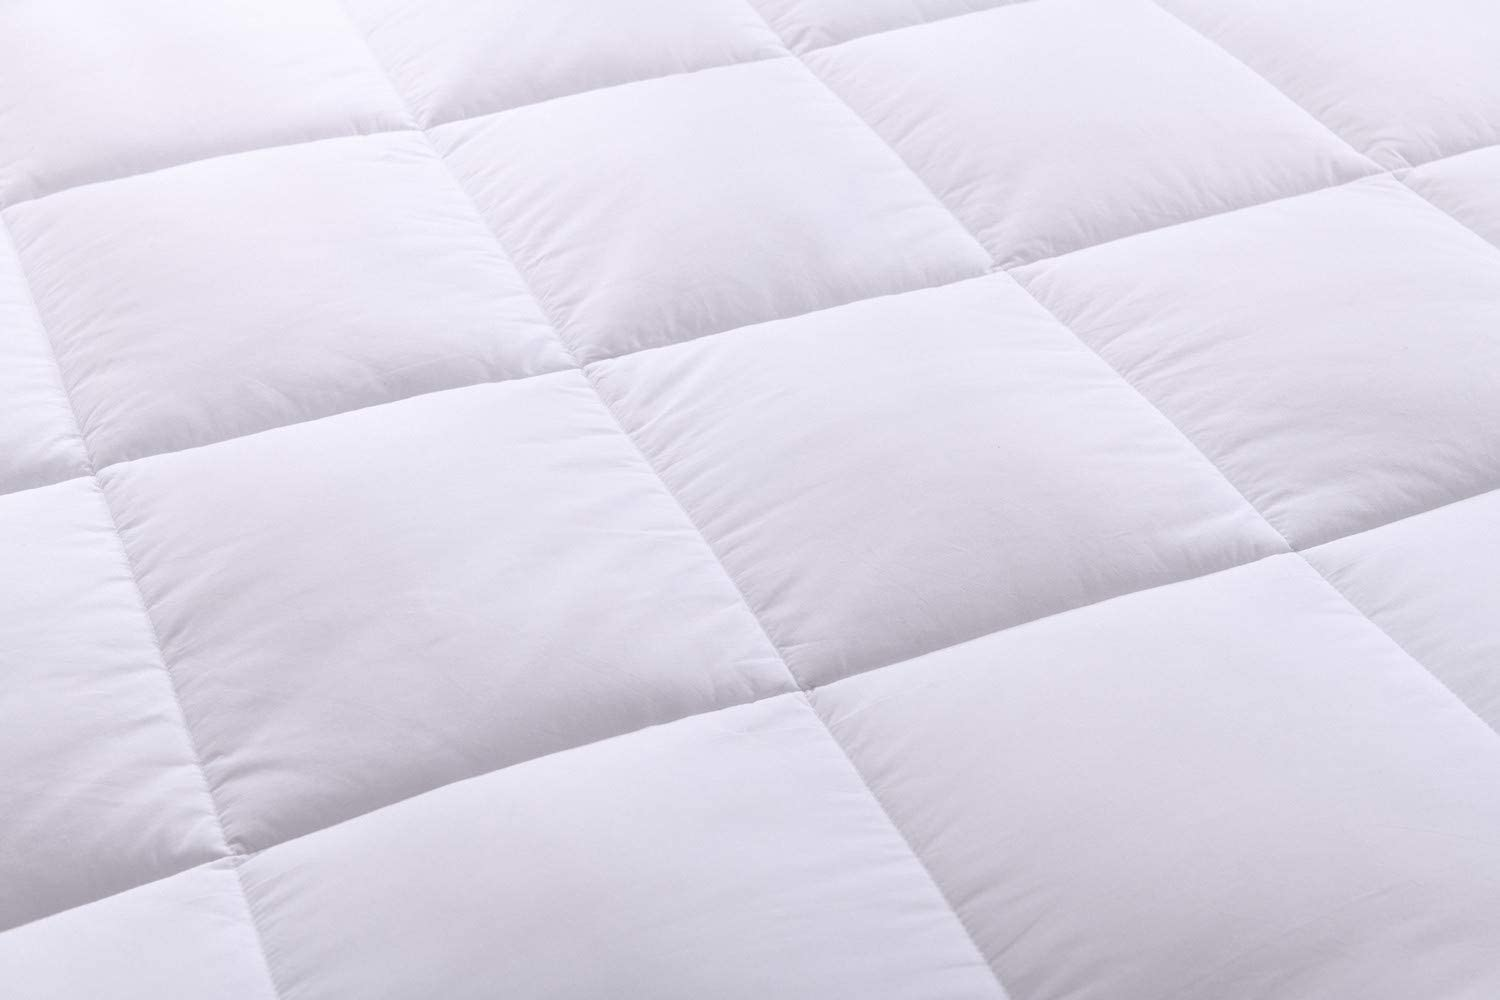 Depending on the region of the world, the size of a duvet may vary although it is has the same name.